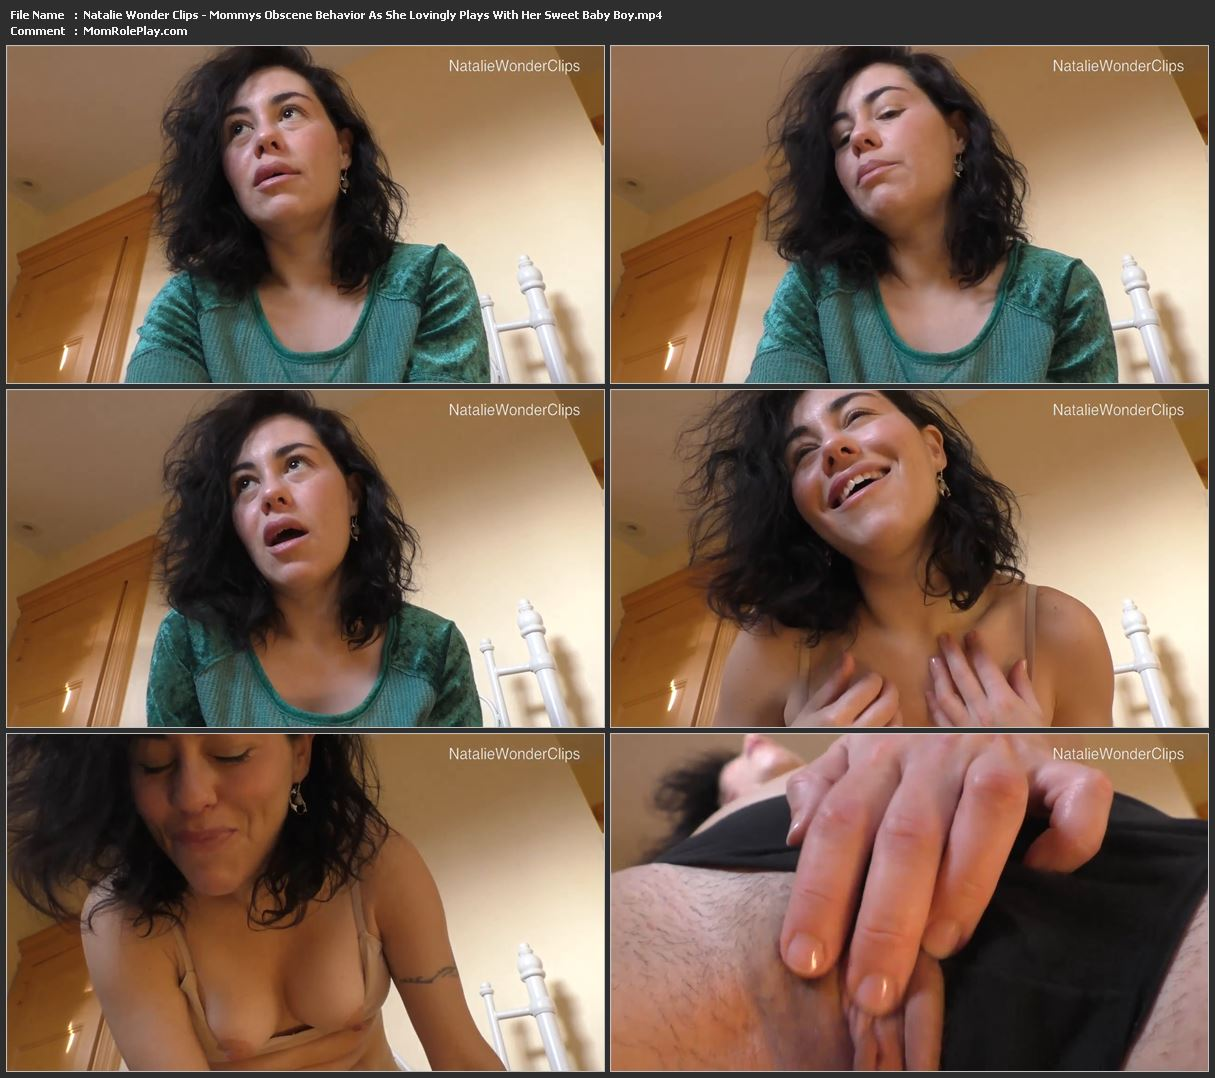 Natalie Wonder Clips - Mommy's Obscene Behavior As She Lovingly Plays With Her Sweet Baby Boy